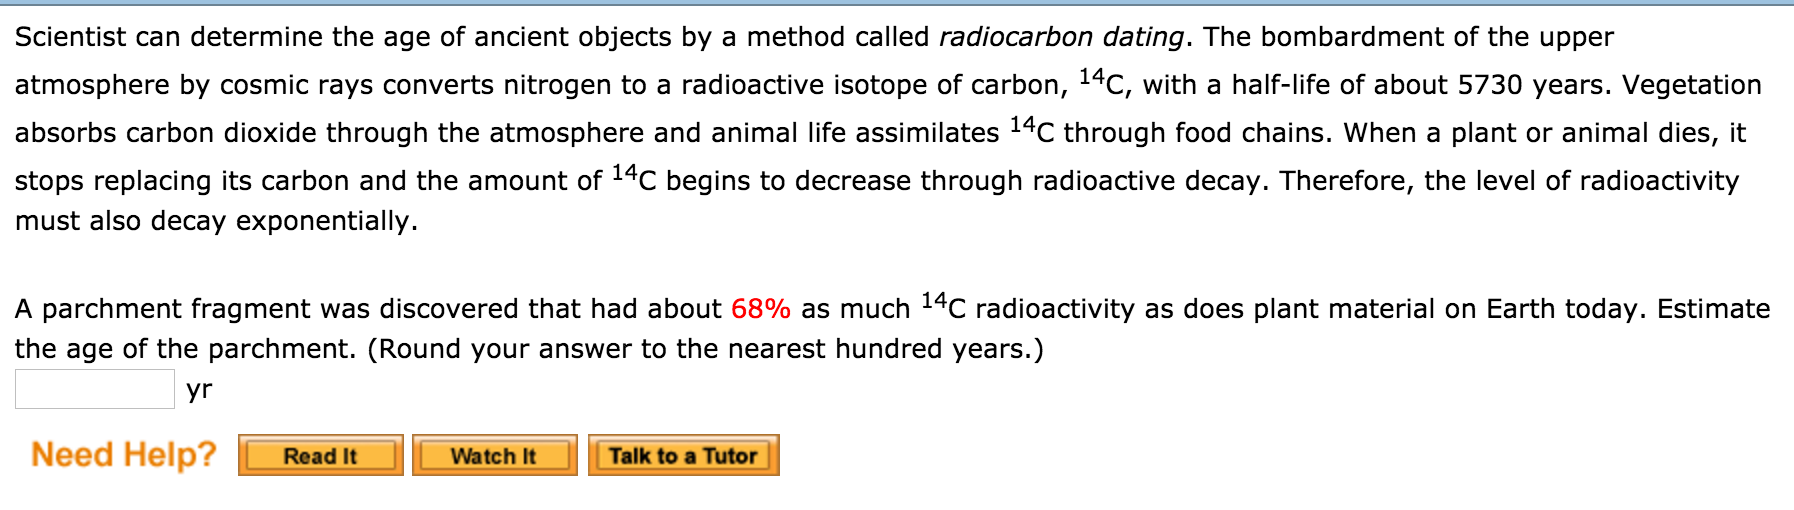 What does radiocarbon dating determine